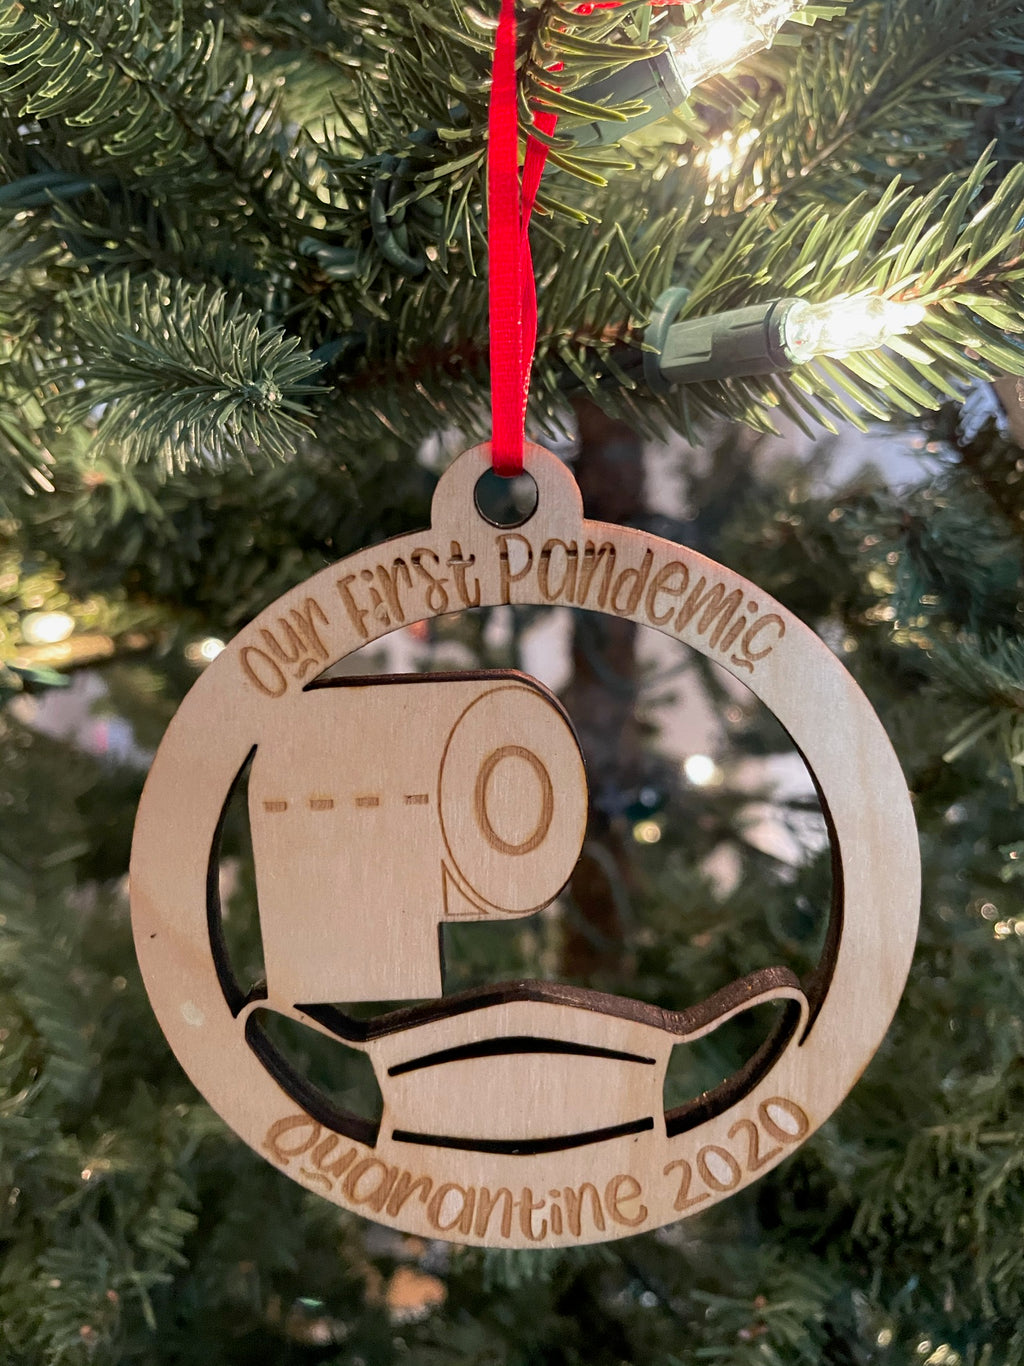 Our First Pandemic Quarantine 2020 Laser Cut Wooden Ornament